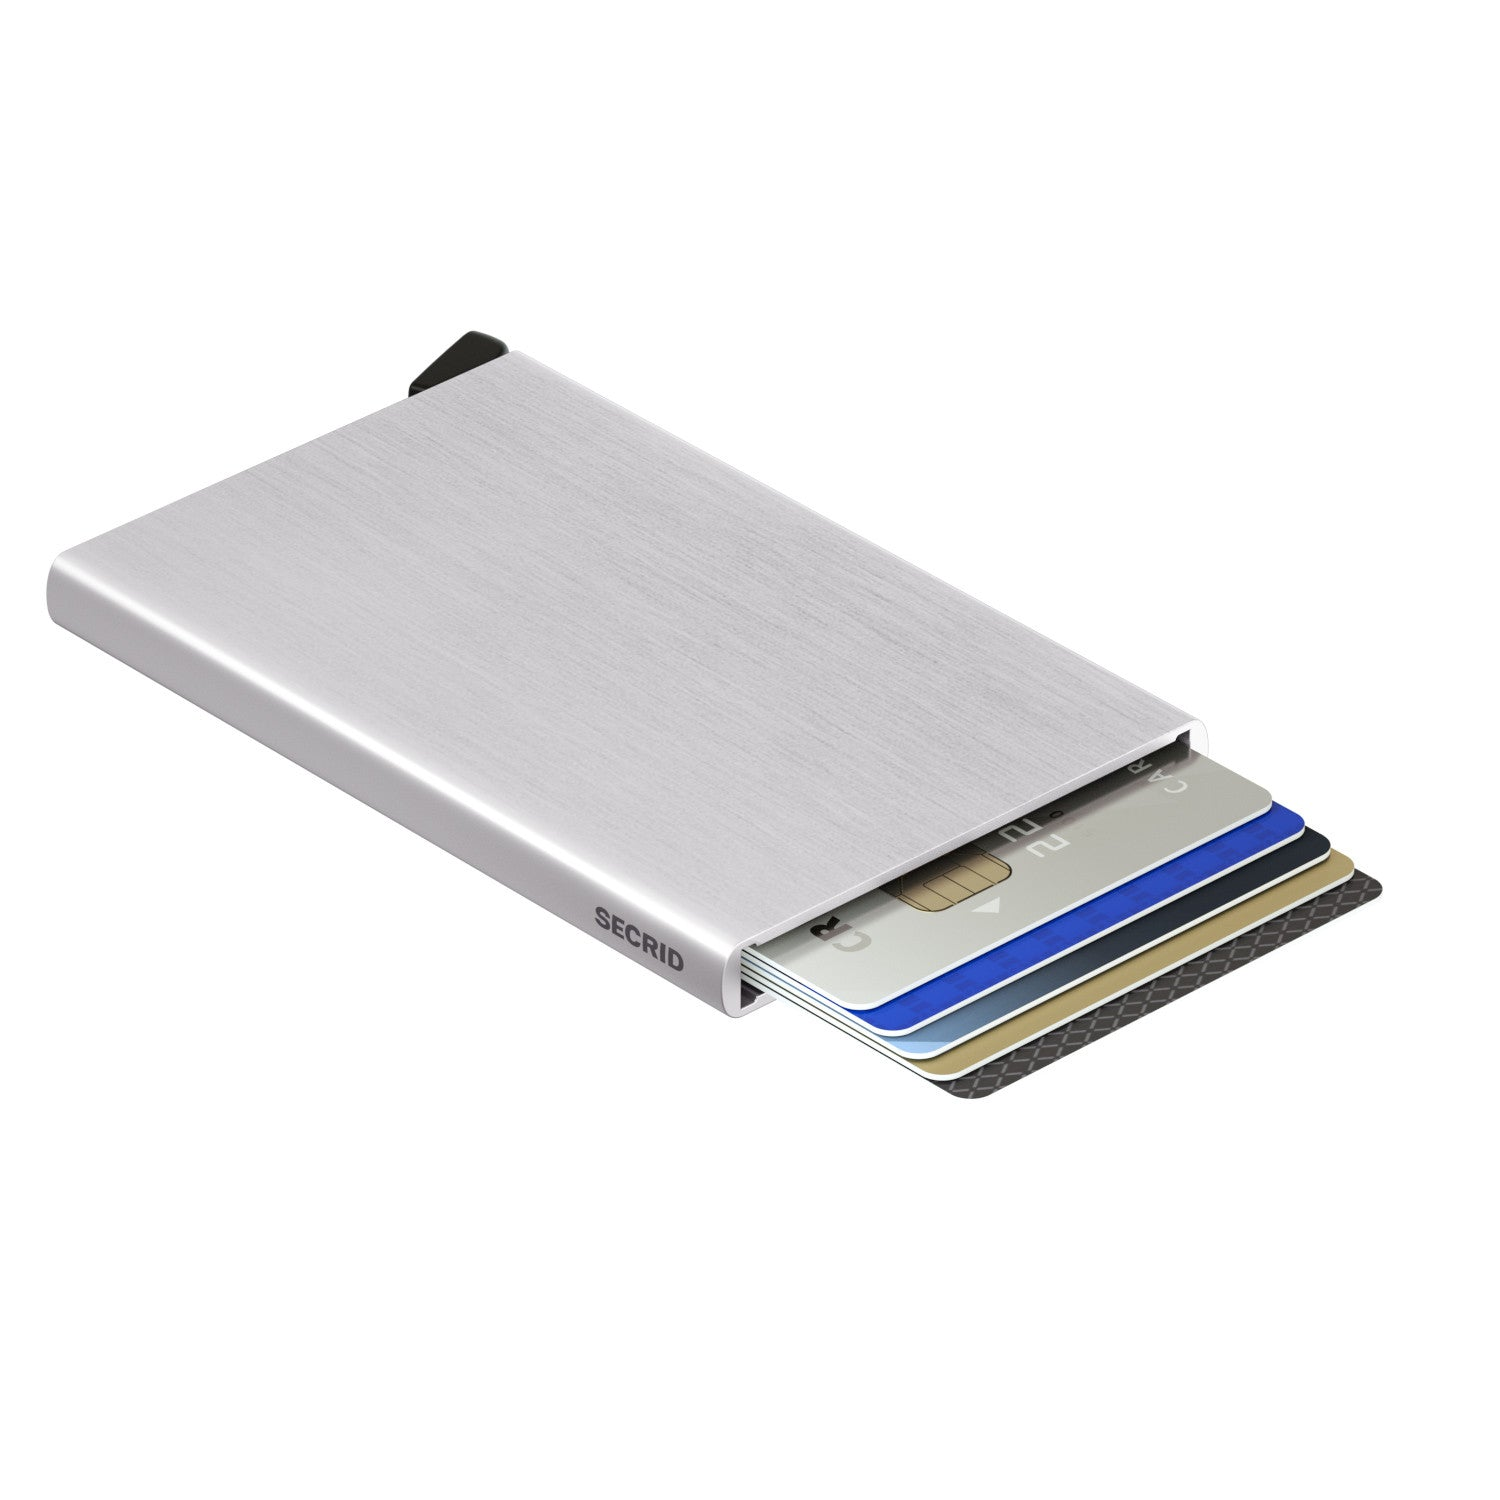 Secrid Cardprotector (Silver Brushed) - Plus Minus